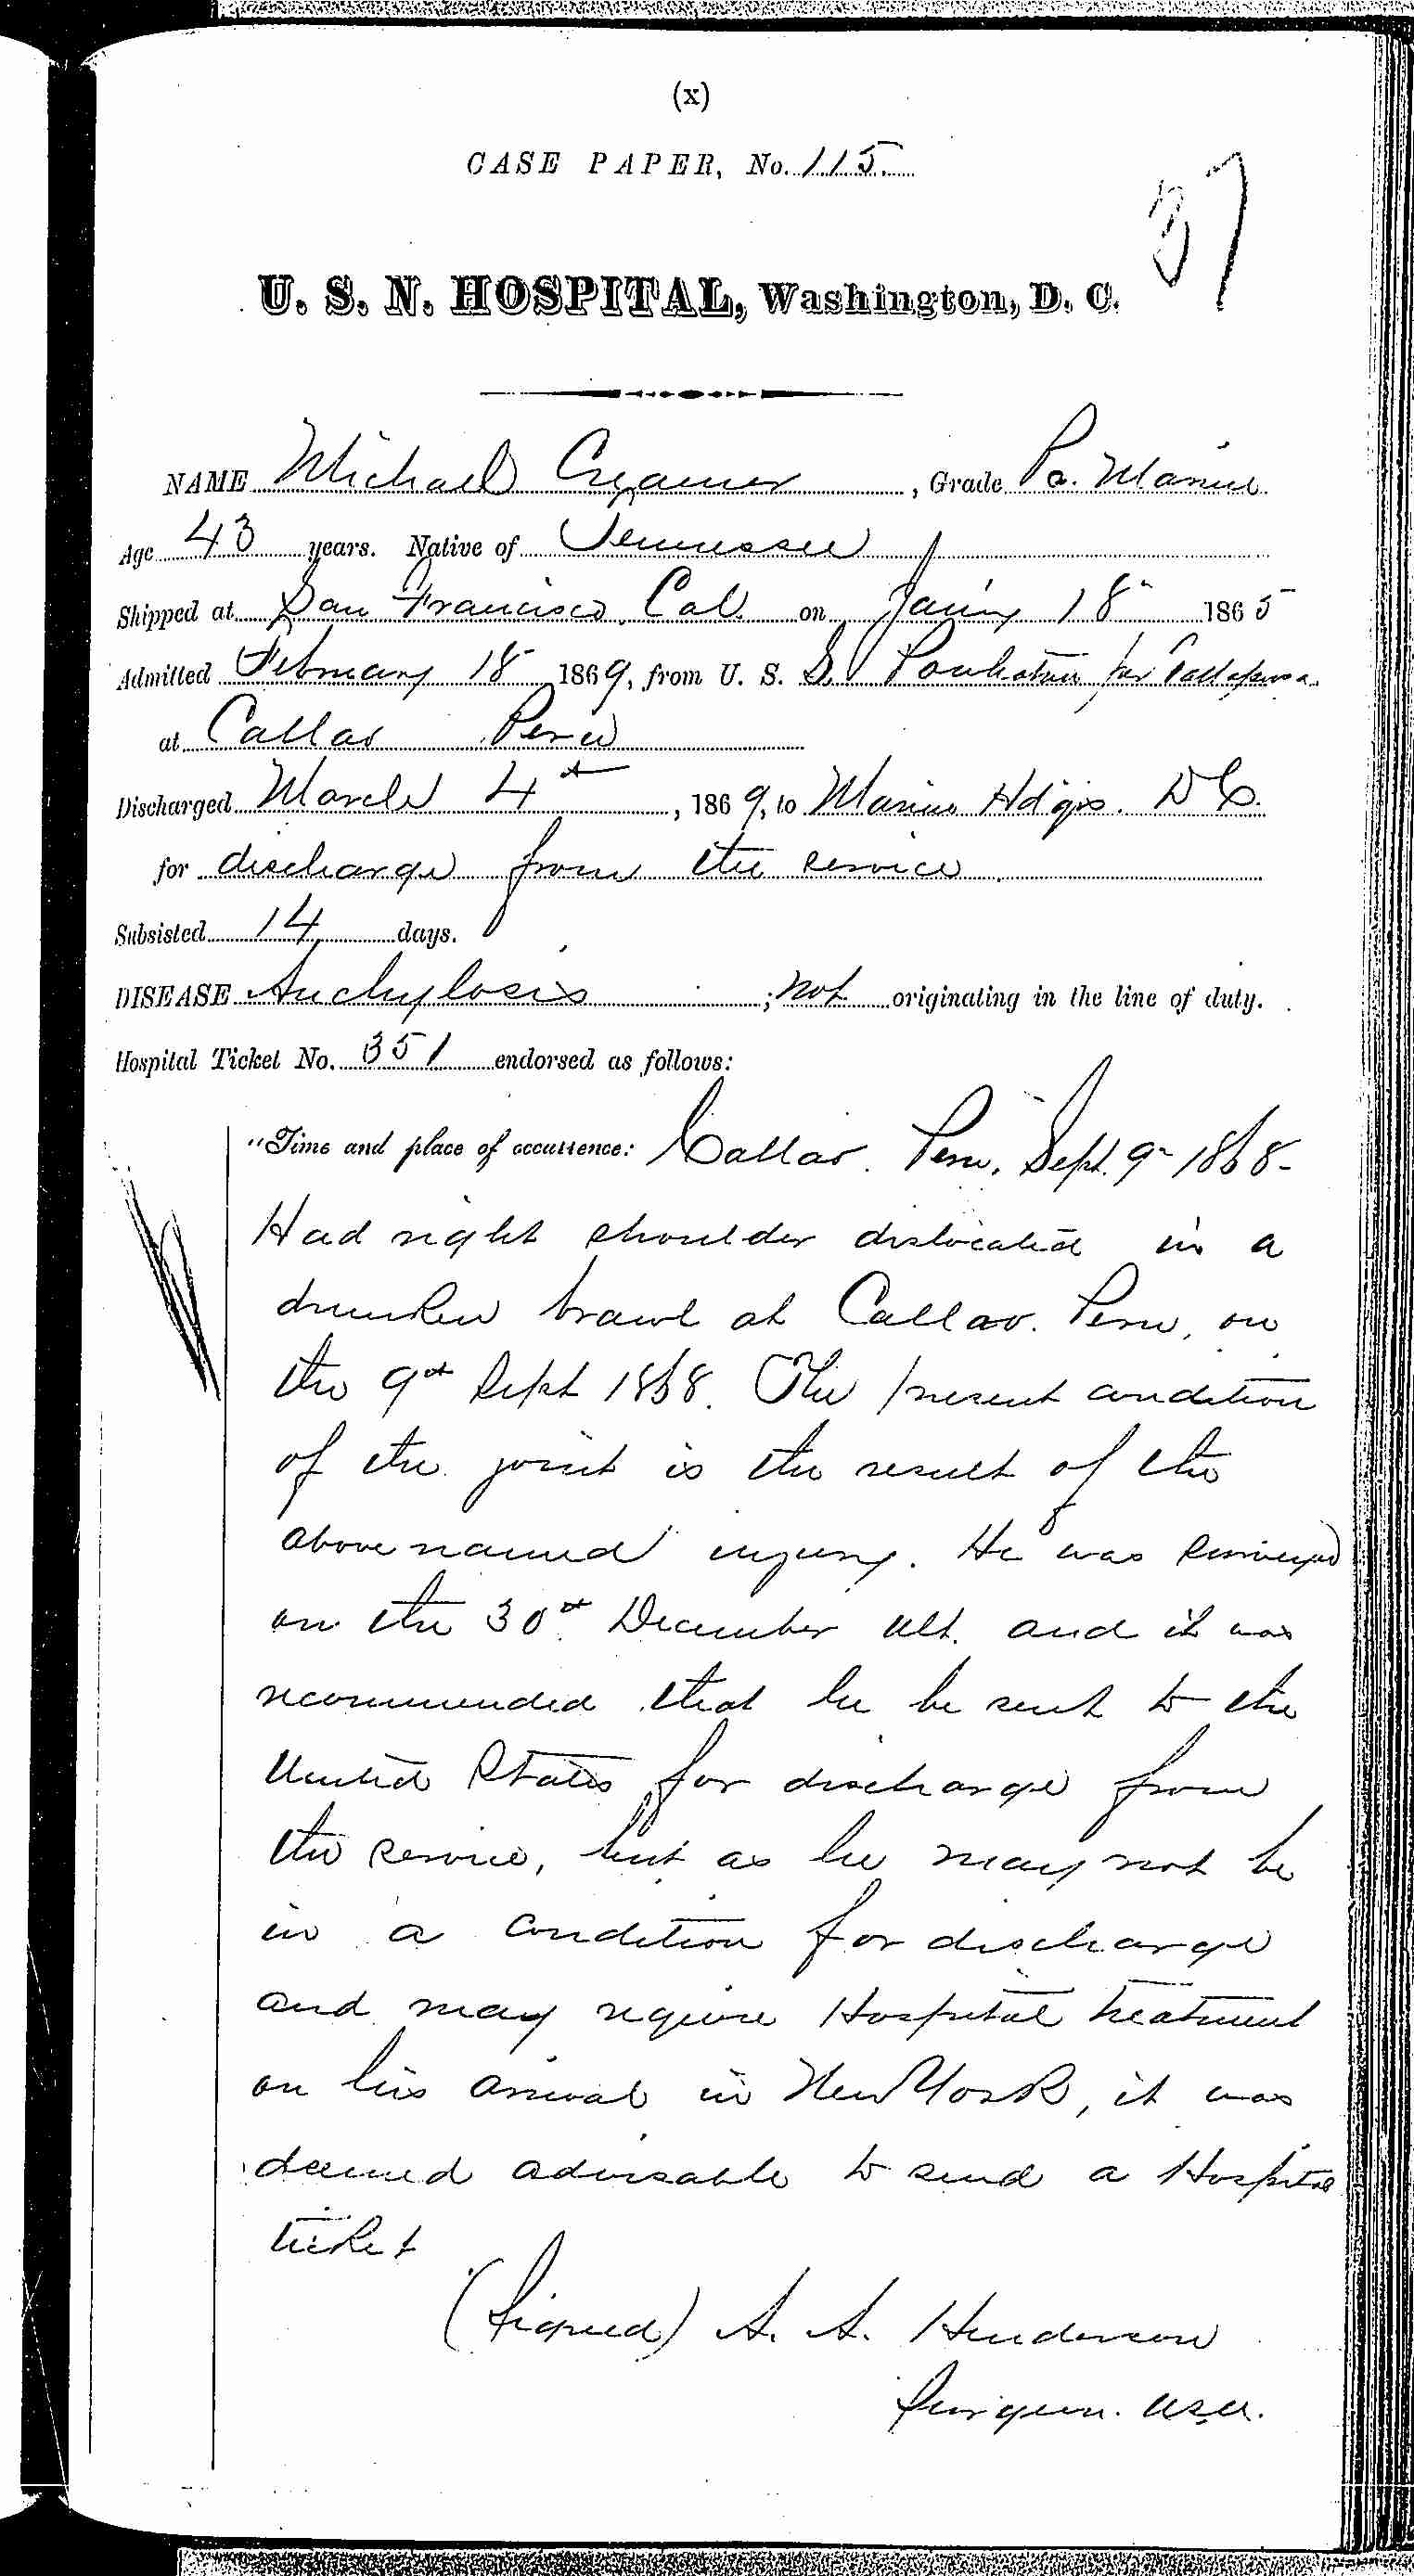 Entry for Michael Craemer (page 1 of 2) in the log Hospital Tickets and Case Papers - Naval Hospital - Washington, D.C. - 1868-69